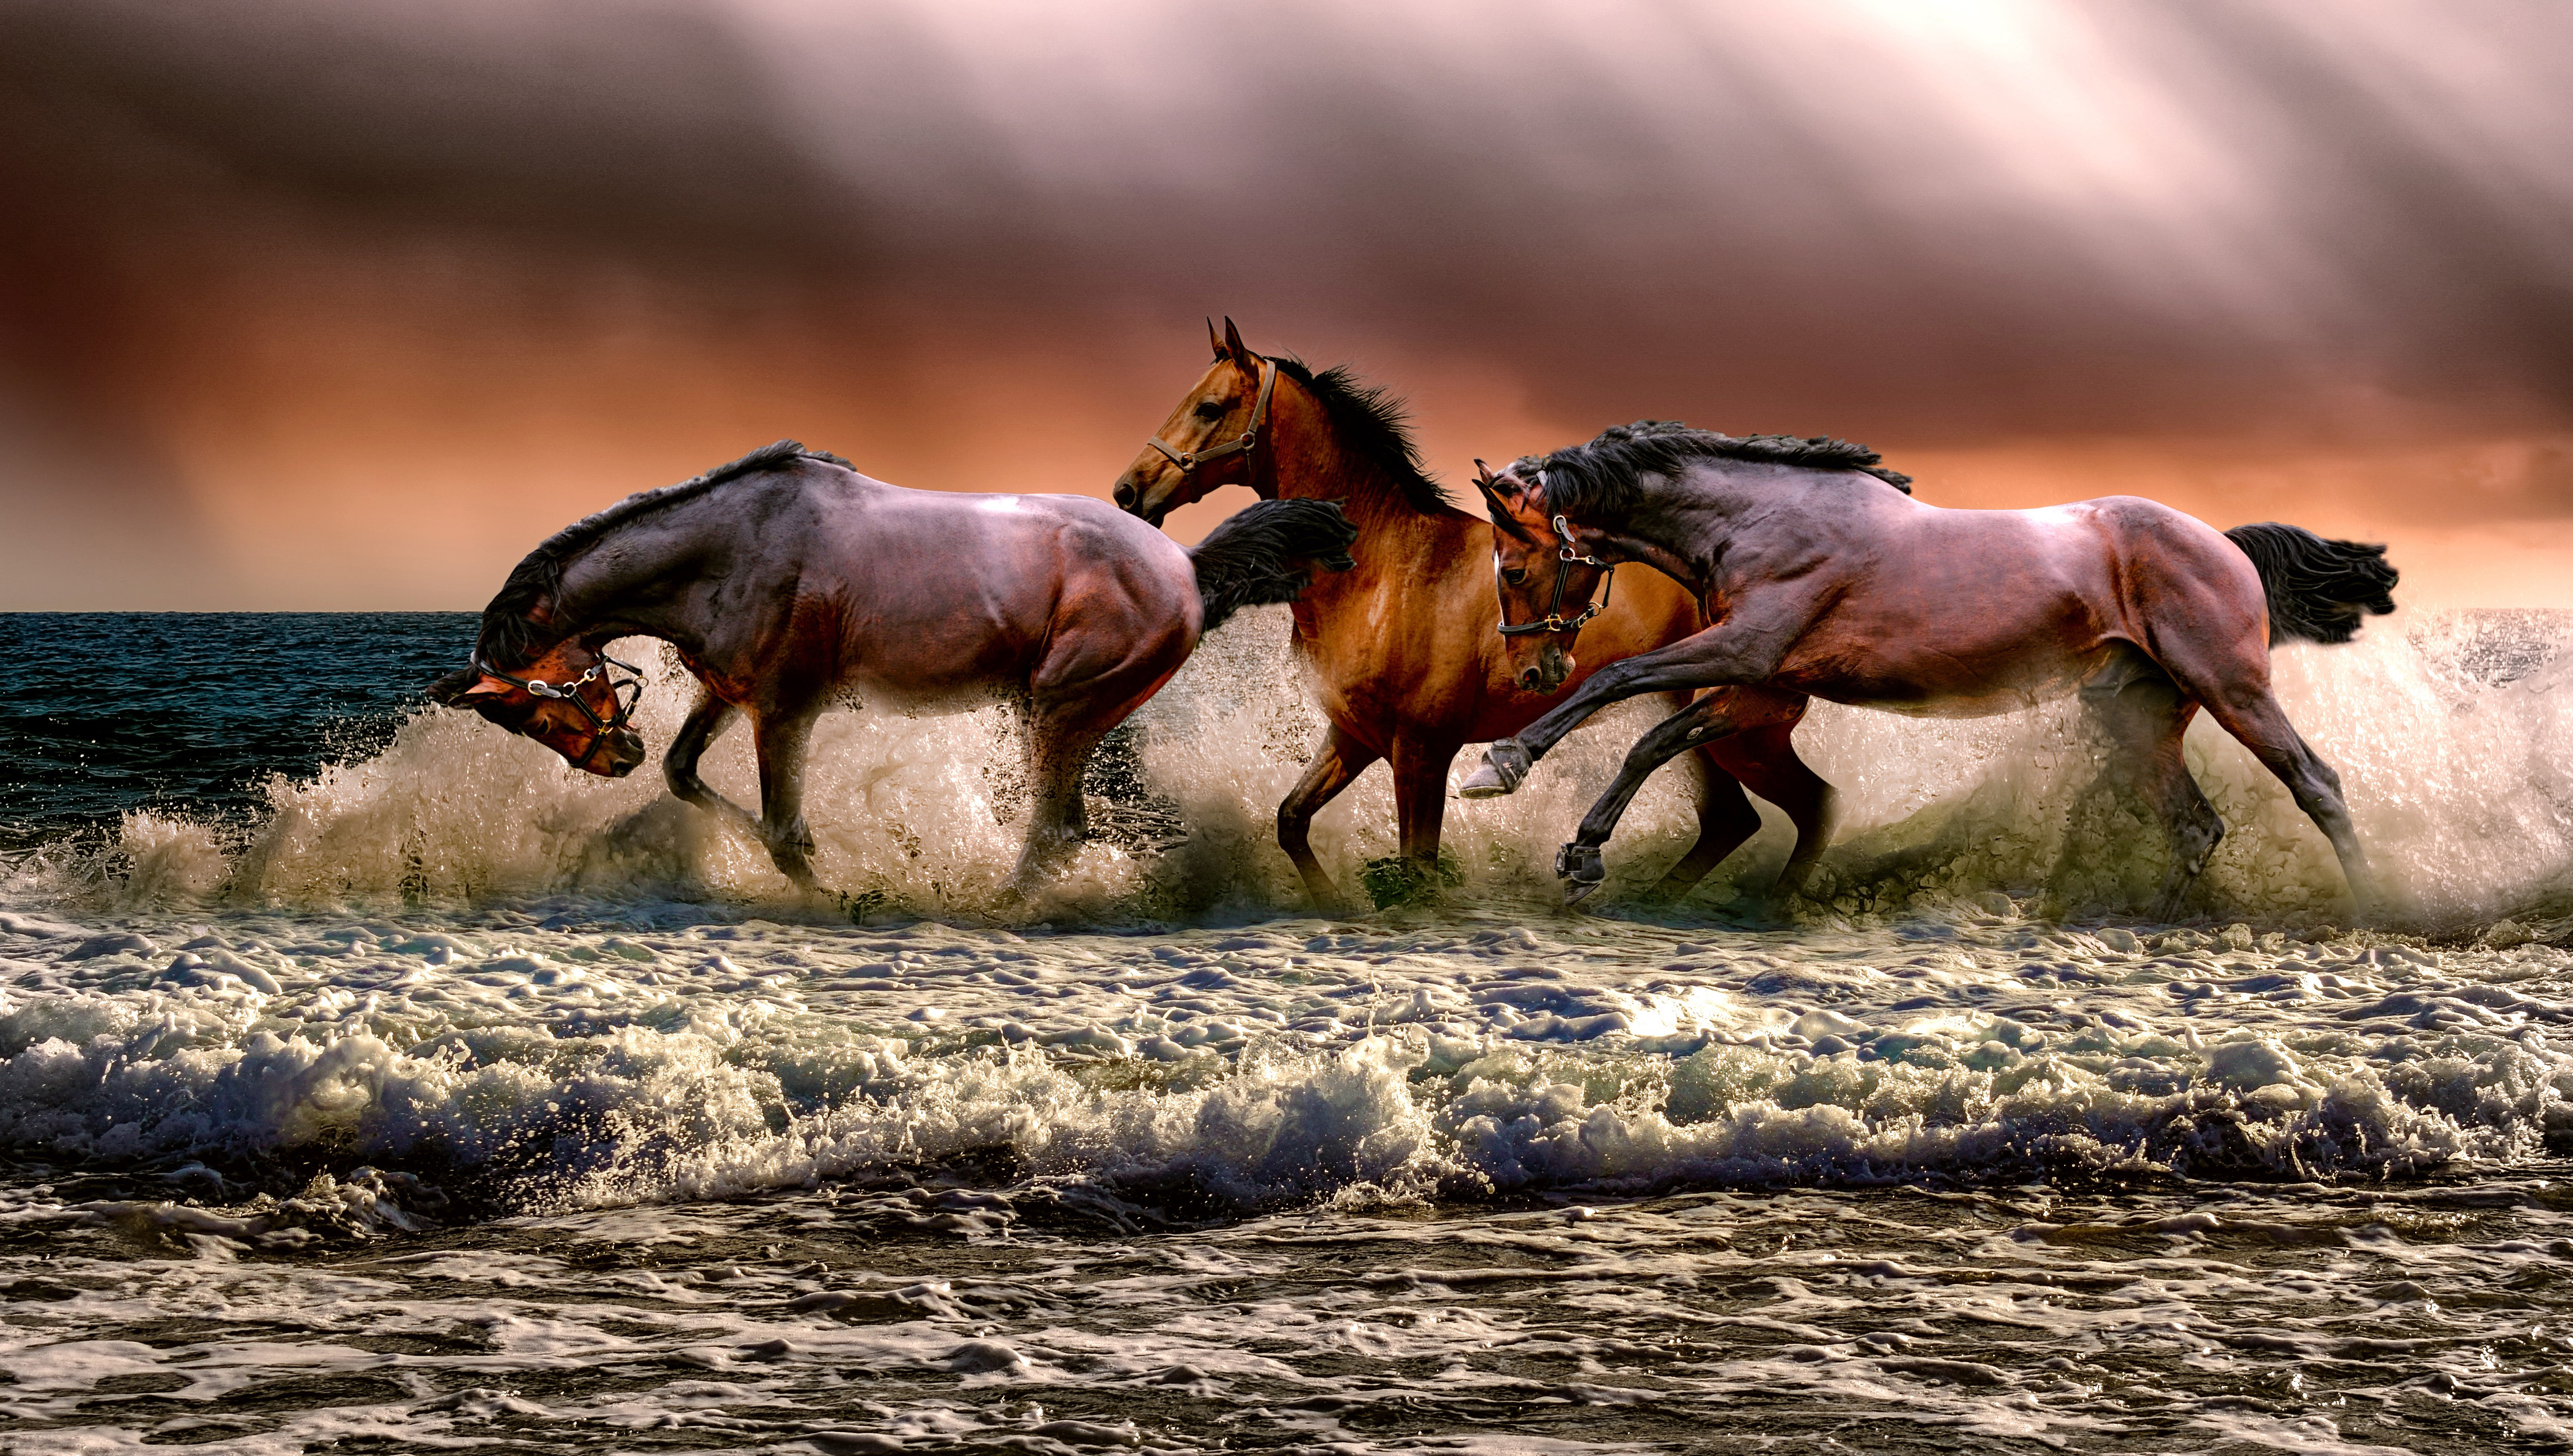 Runing horse,horse,water,nature